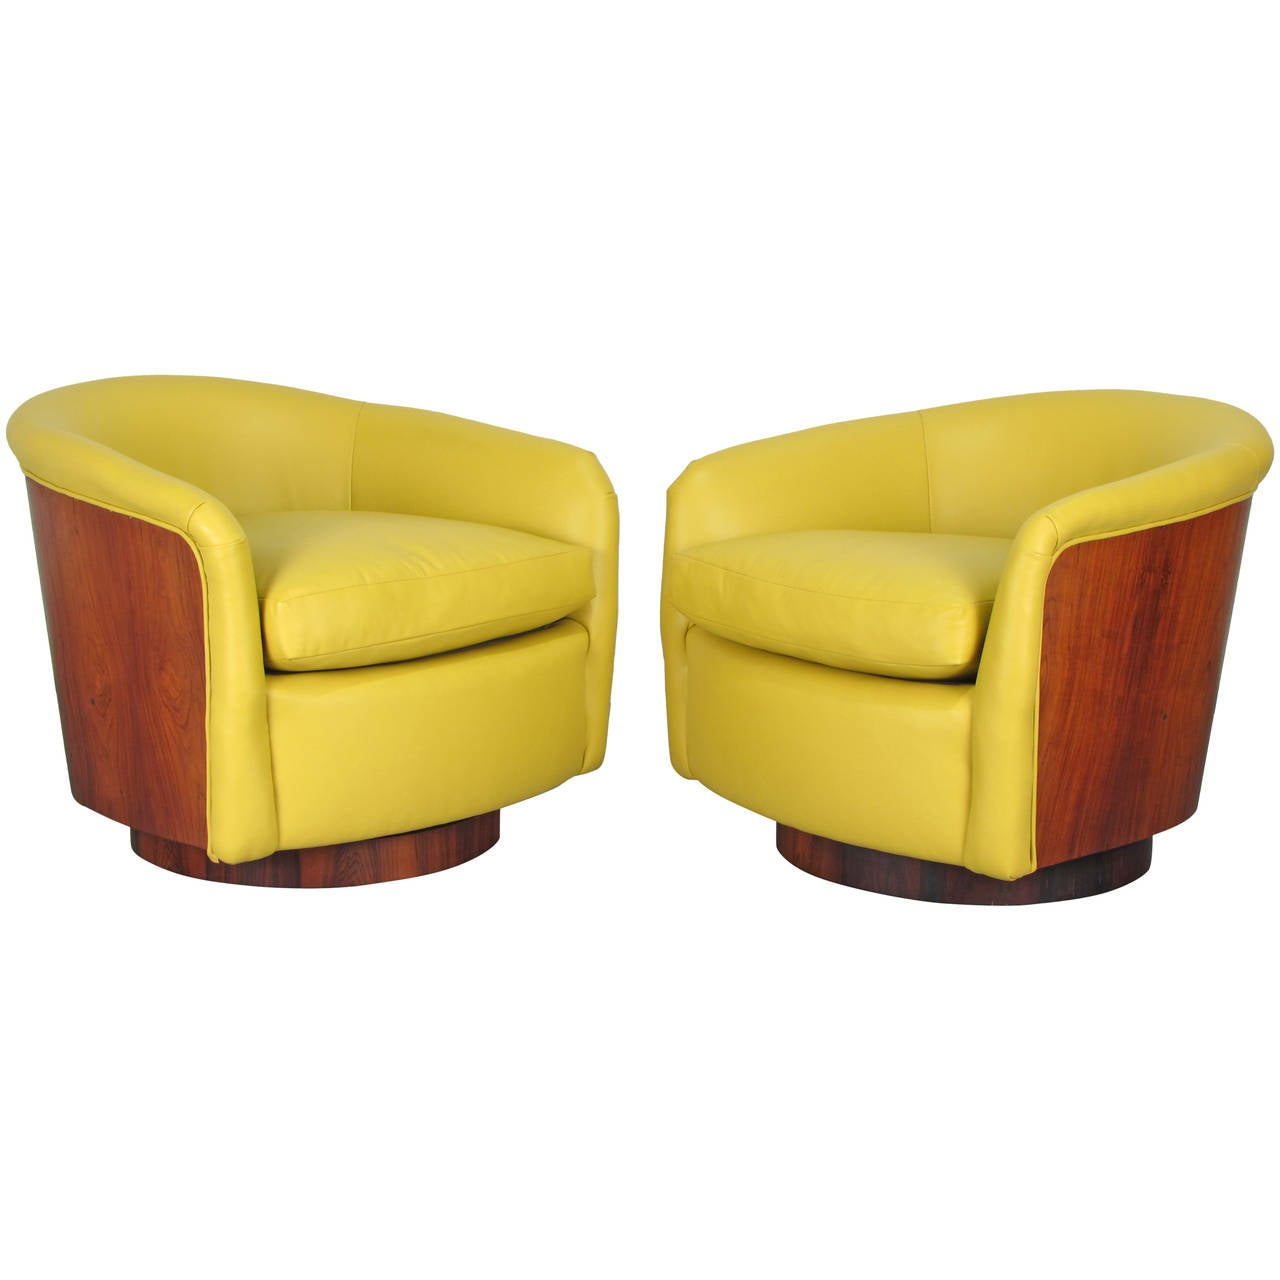 swivel tub chairs pride parts rare rosewood wrapped in leather by milo